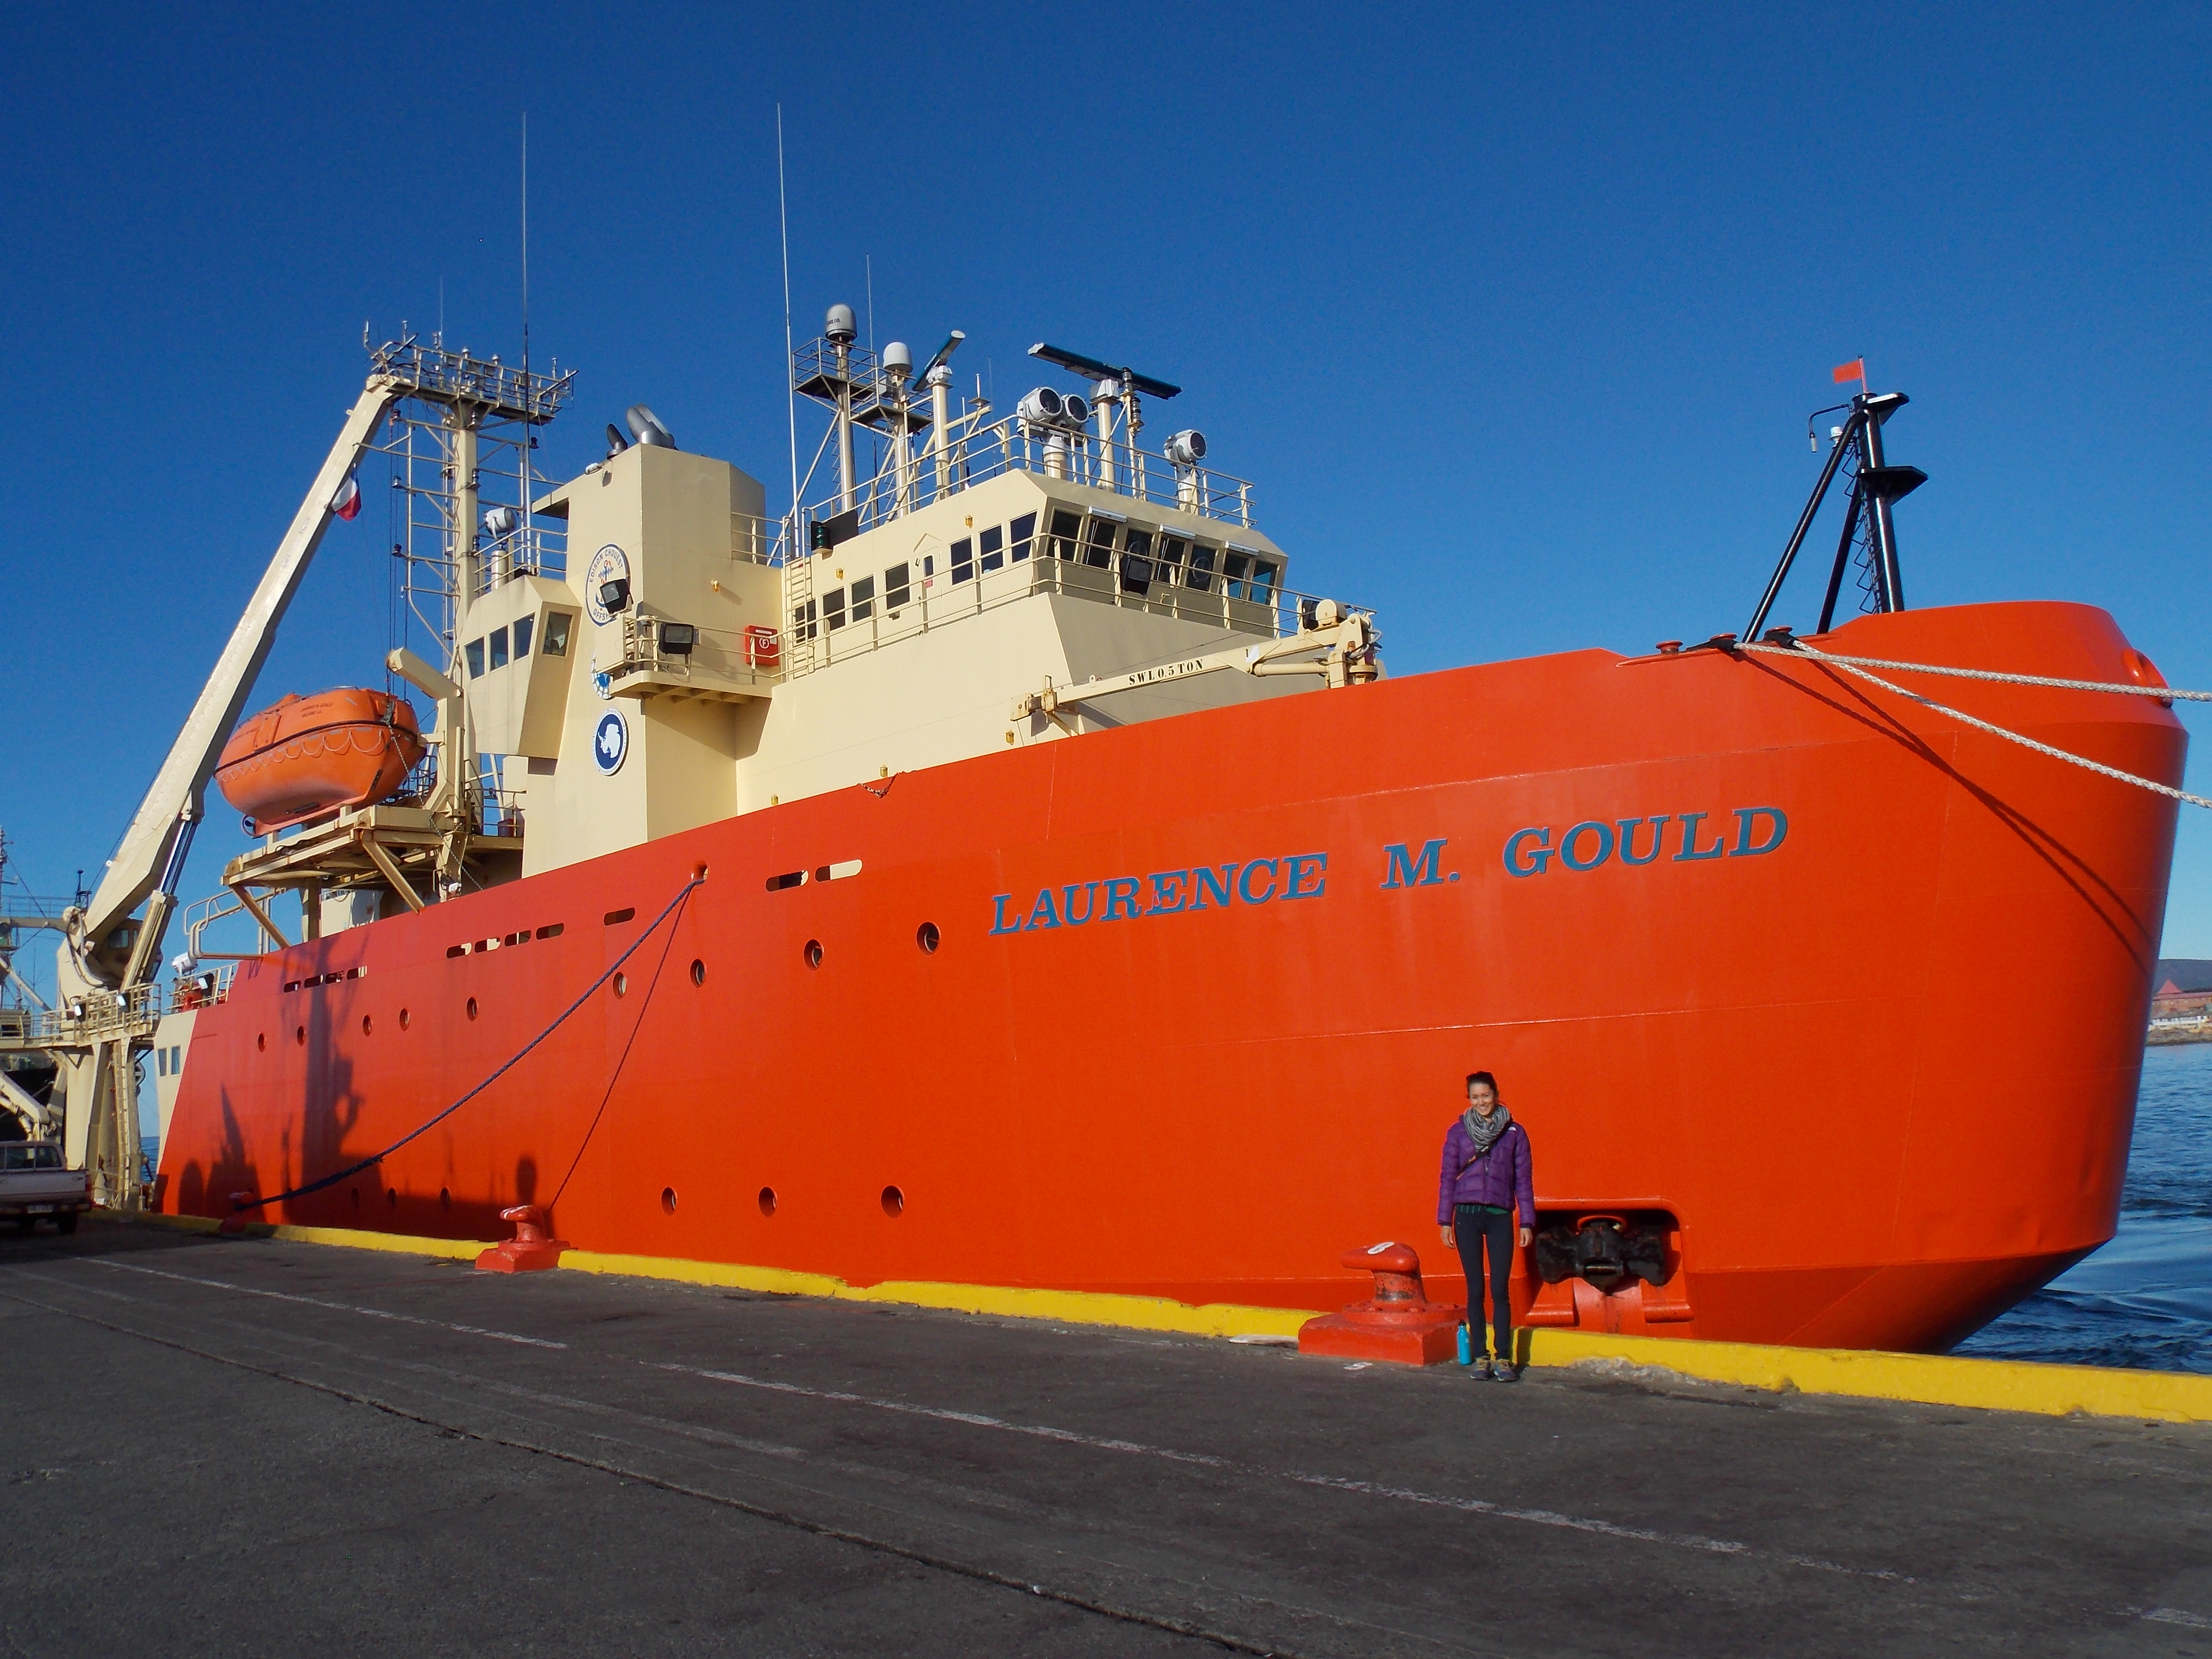 Jamie standing in front of the US's National Science Foundation's icebreaker and research vessel, the Laurence M. Gould, named after an American scientist.